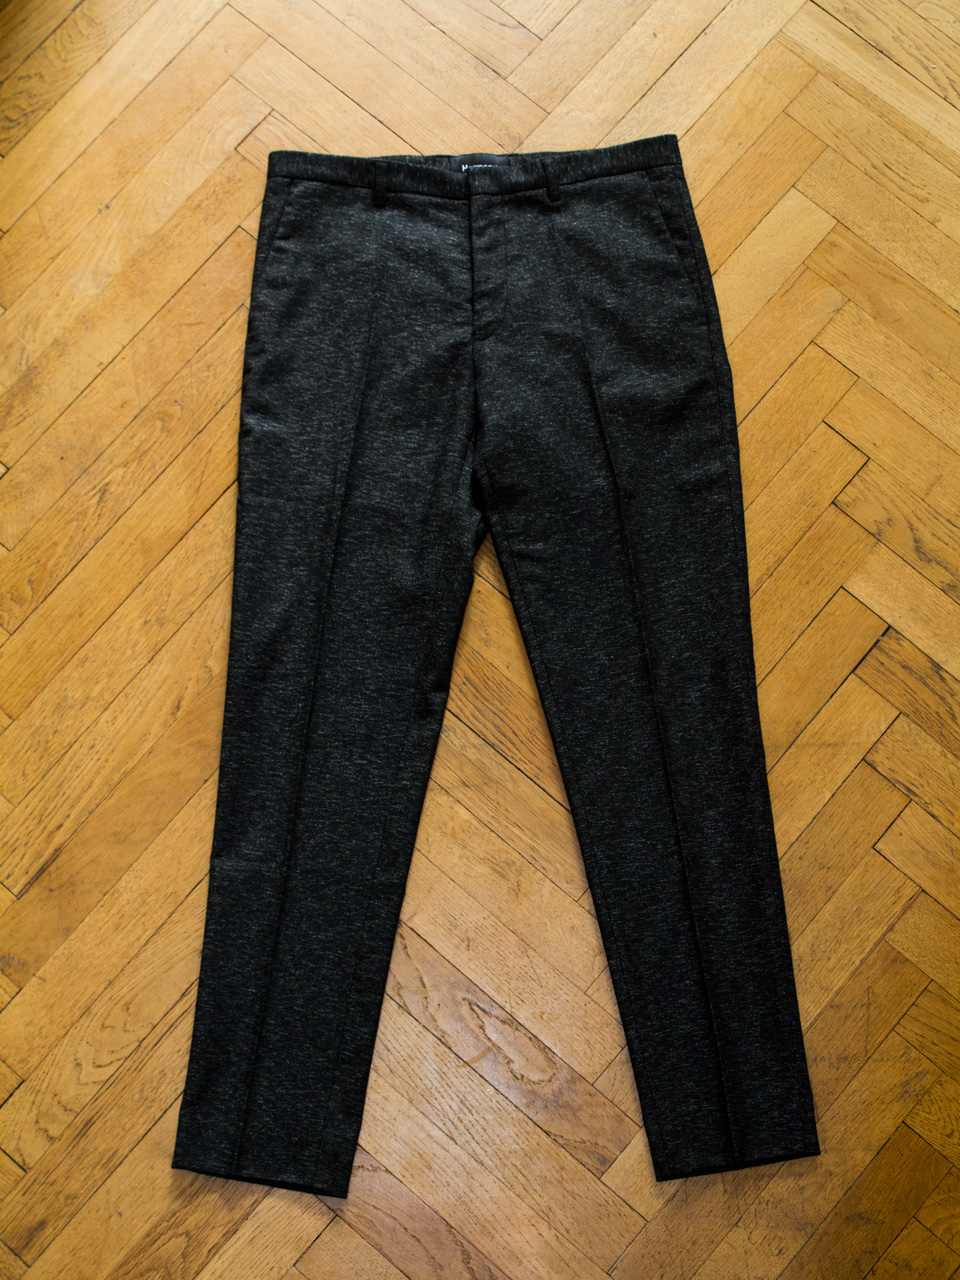 pantalon harmony paris peter heather black